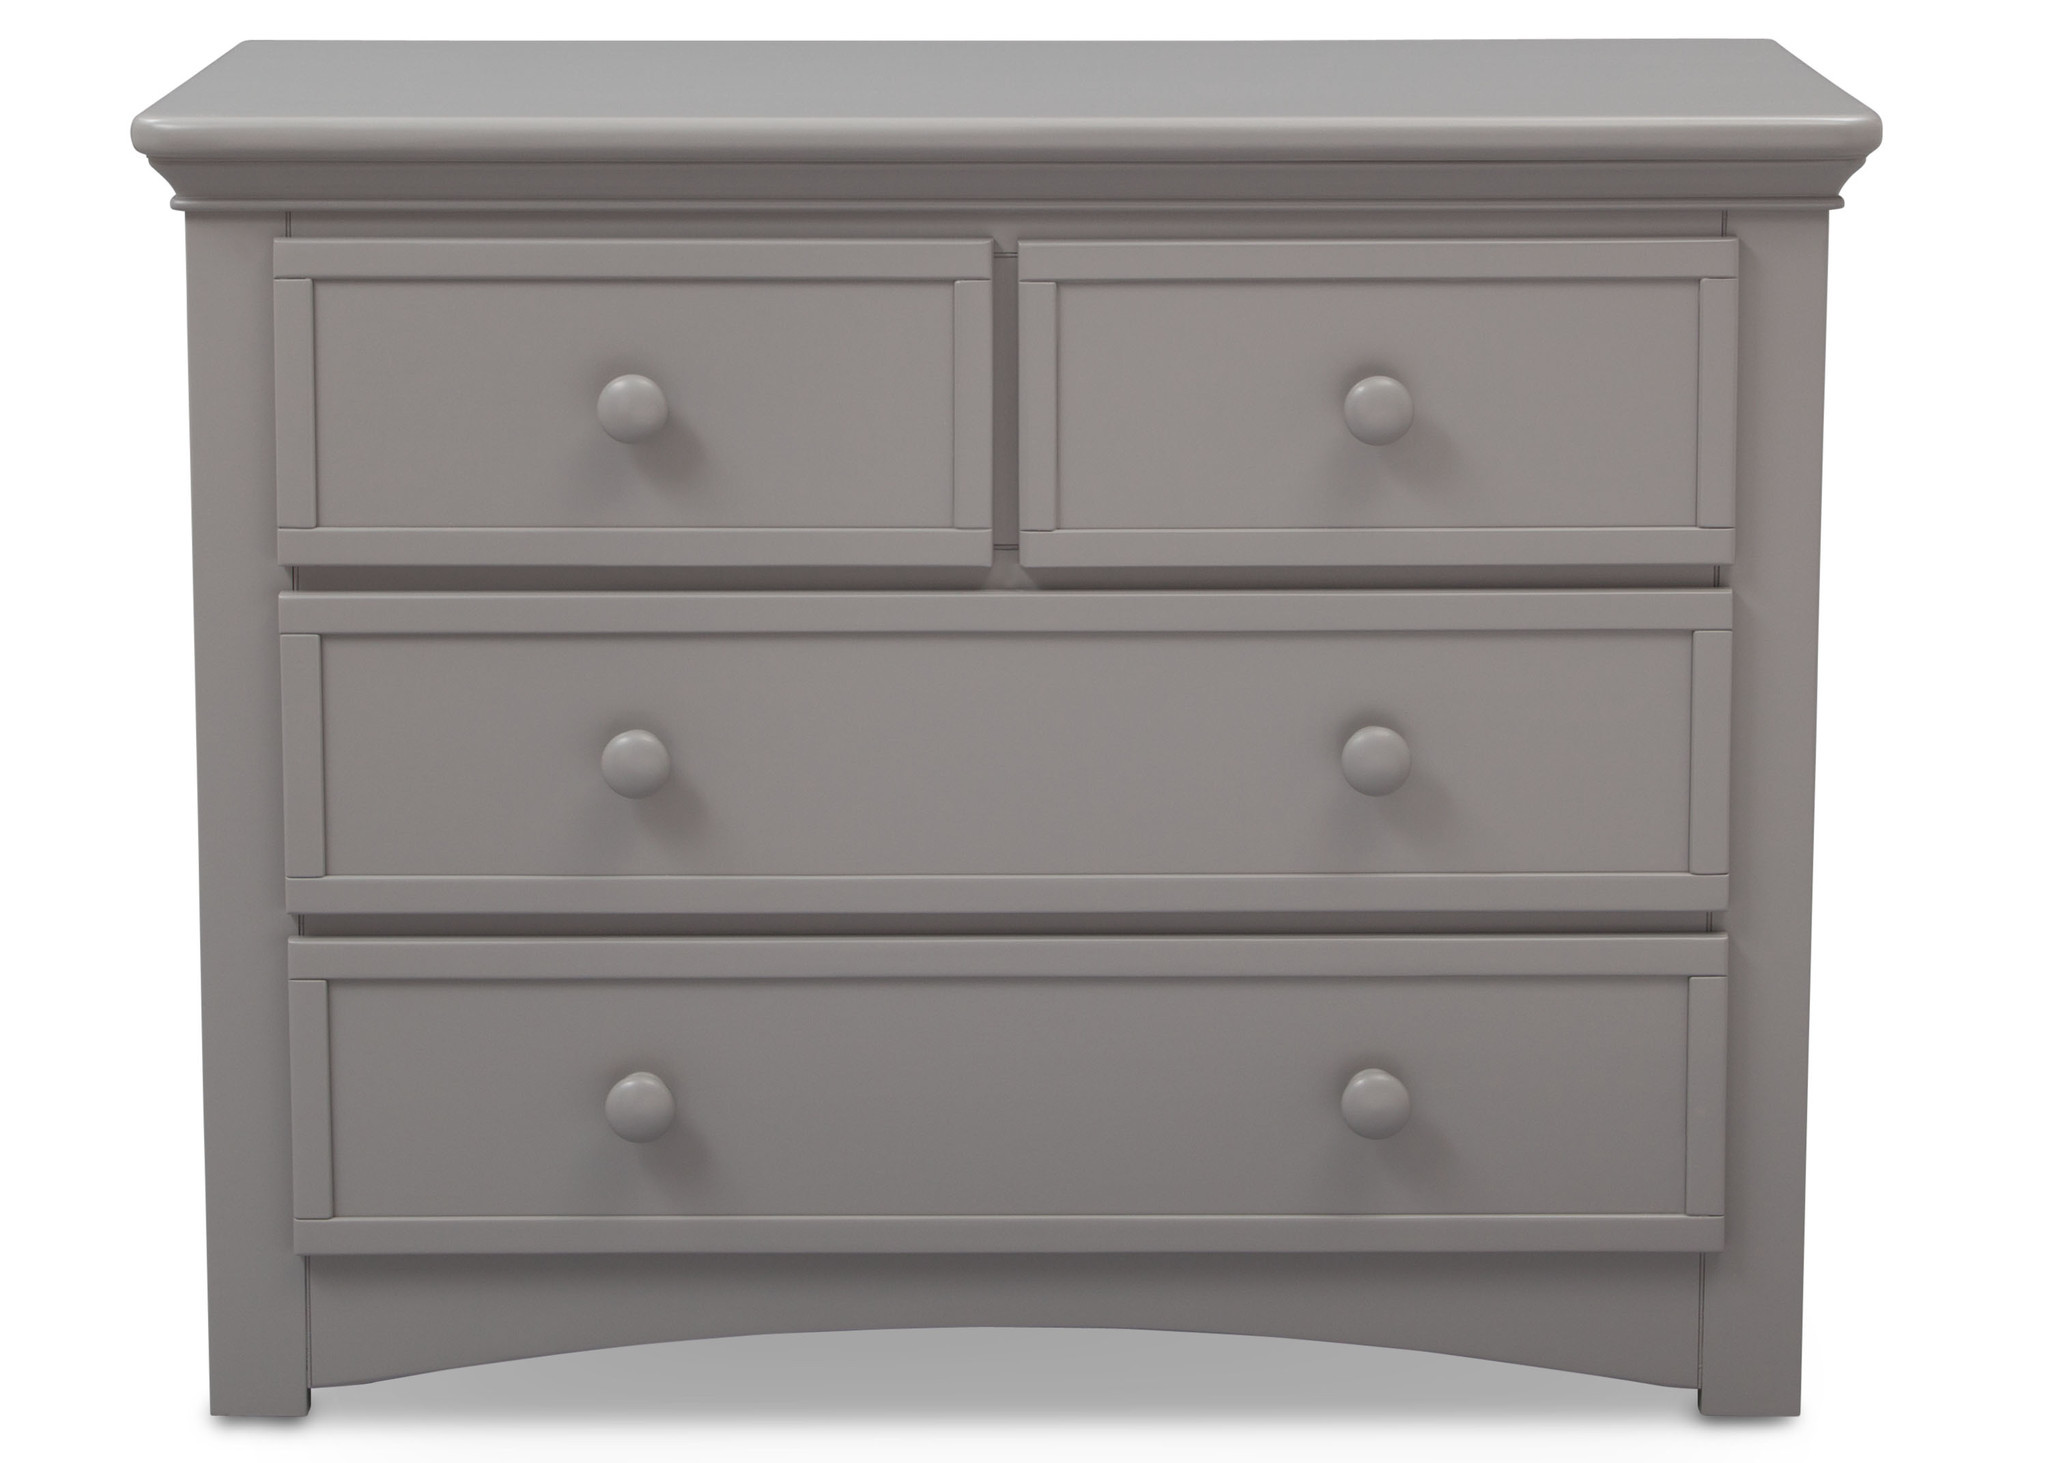 Astonishing 4 drawer dresser with beautiful knob pull drawers for home furniture ideas